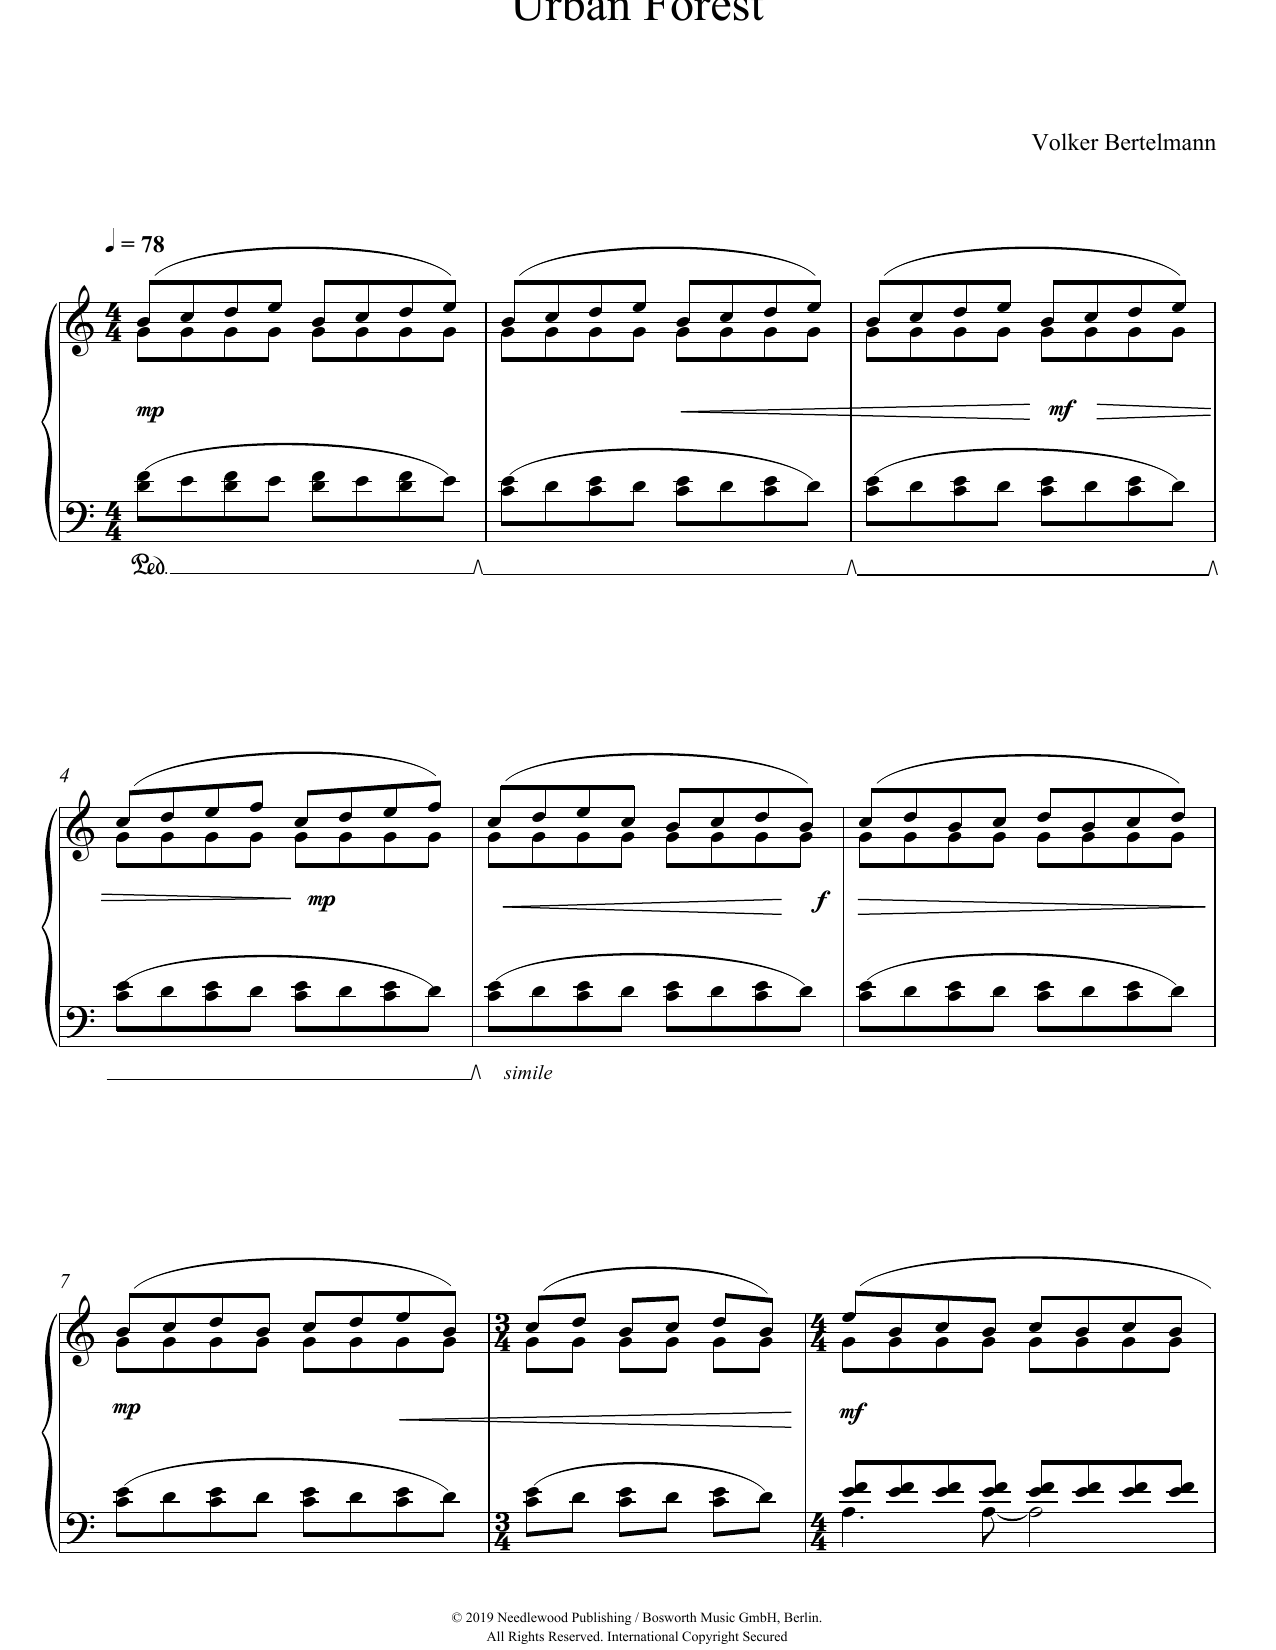 Hauschka Urban Forest sheet music notes and chords. Download Printable PDF.